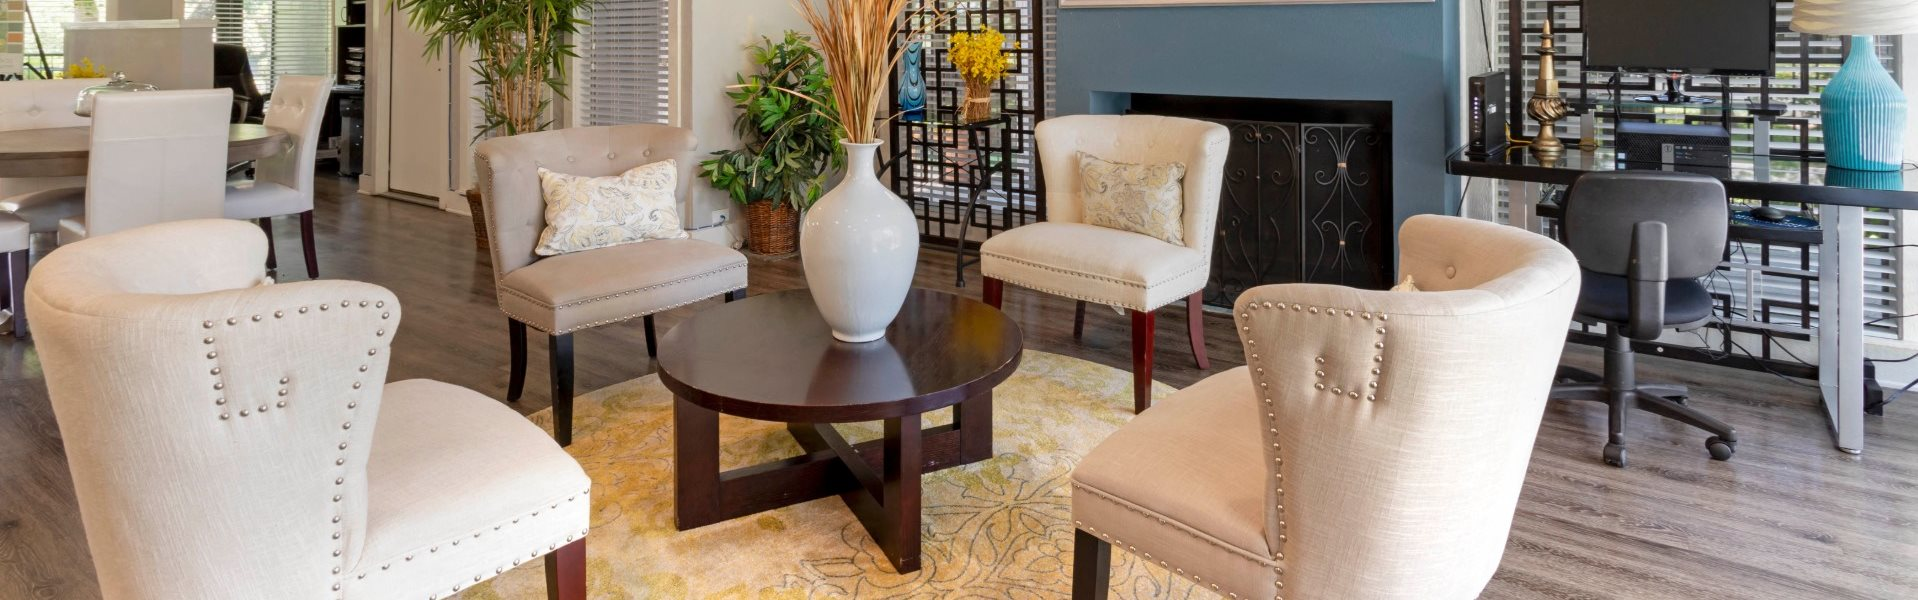 Clubhouse seating Area with 4 White Chairs Surrounding Wooden Coffee Table in Front of Fireplace with Mirror Mounted Next to Computer Desk with Rolling Chair